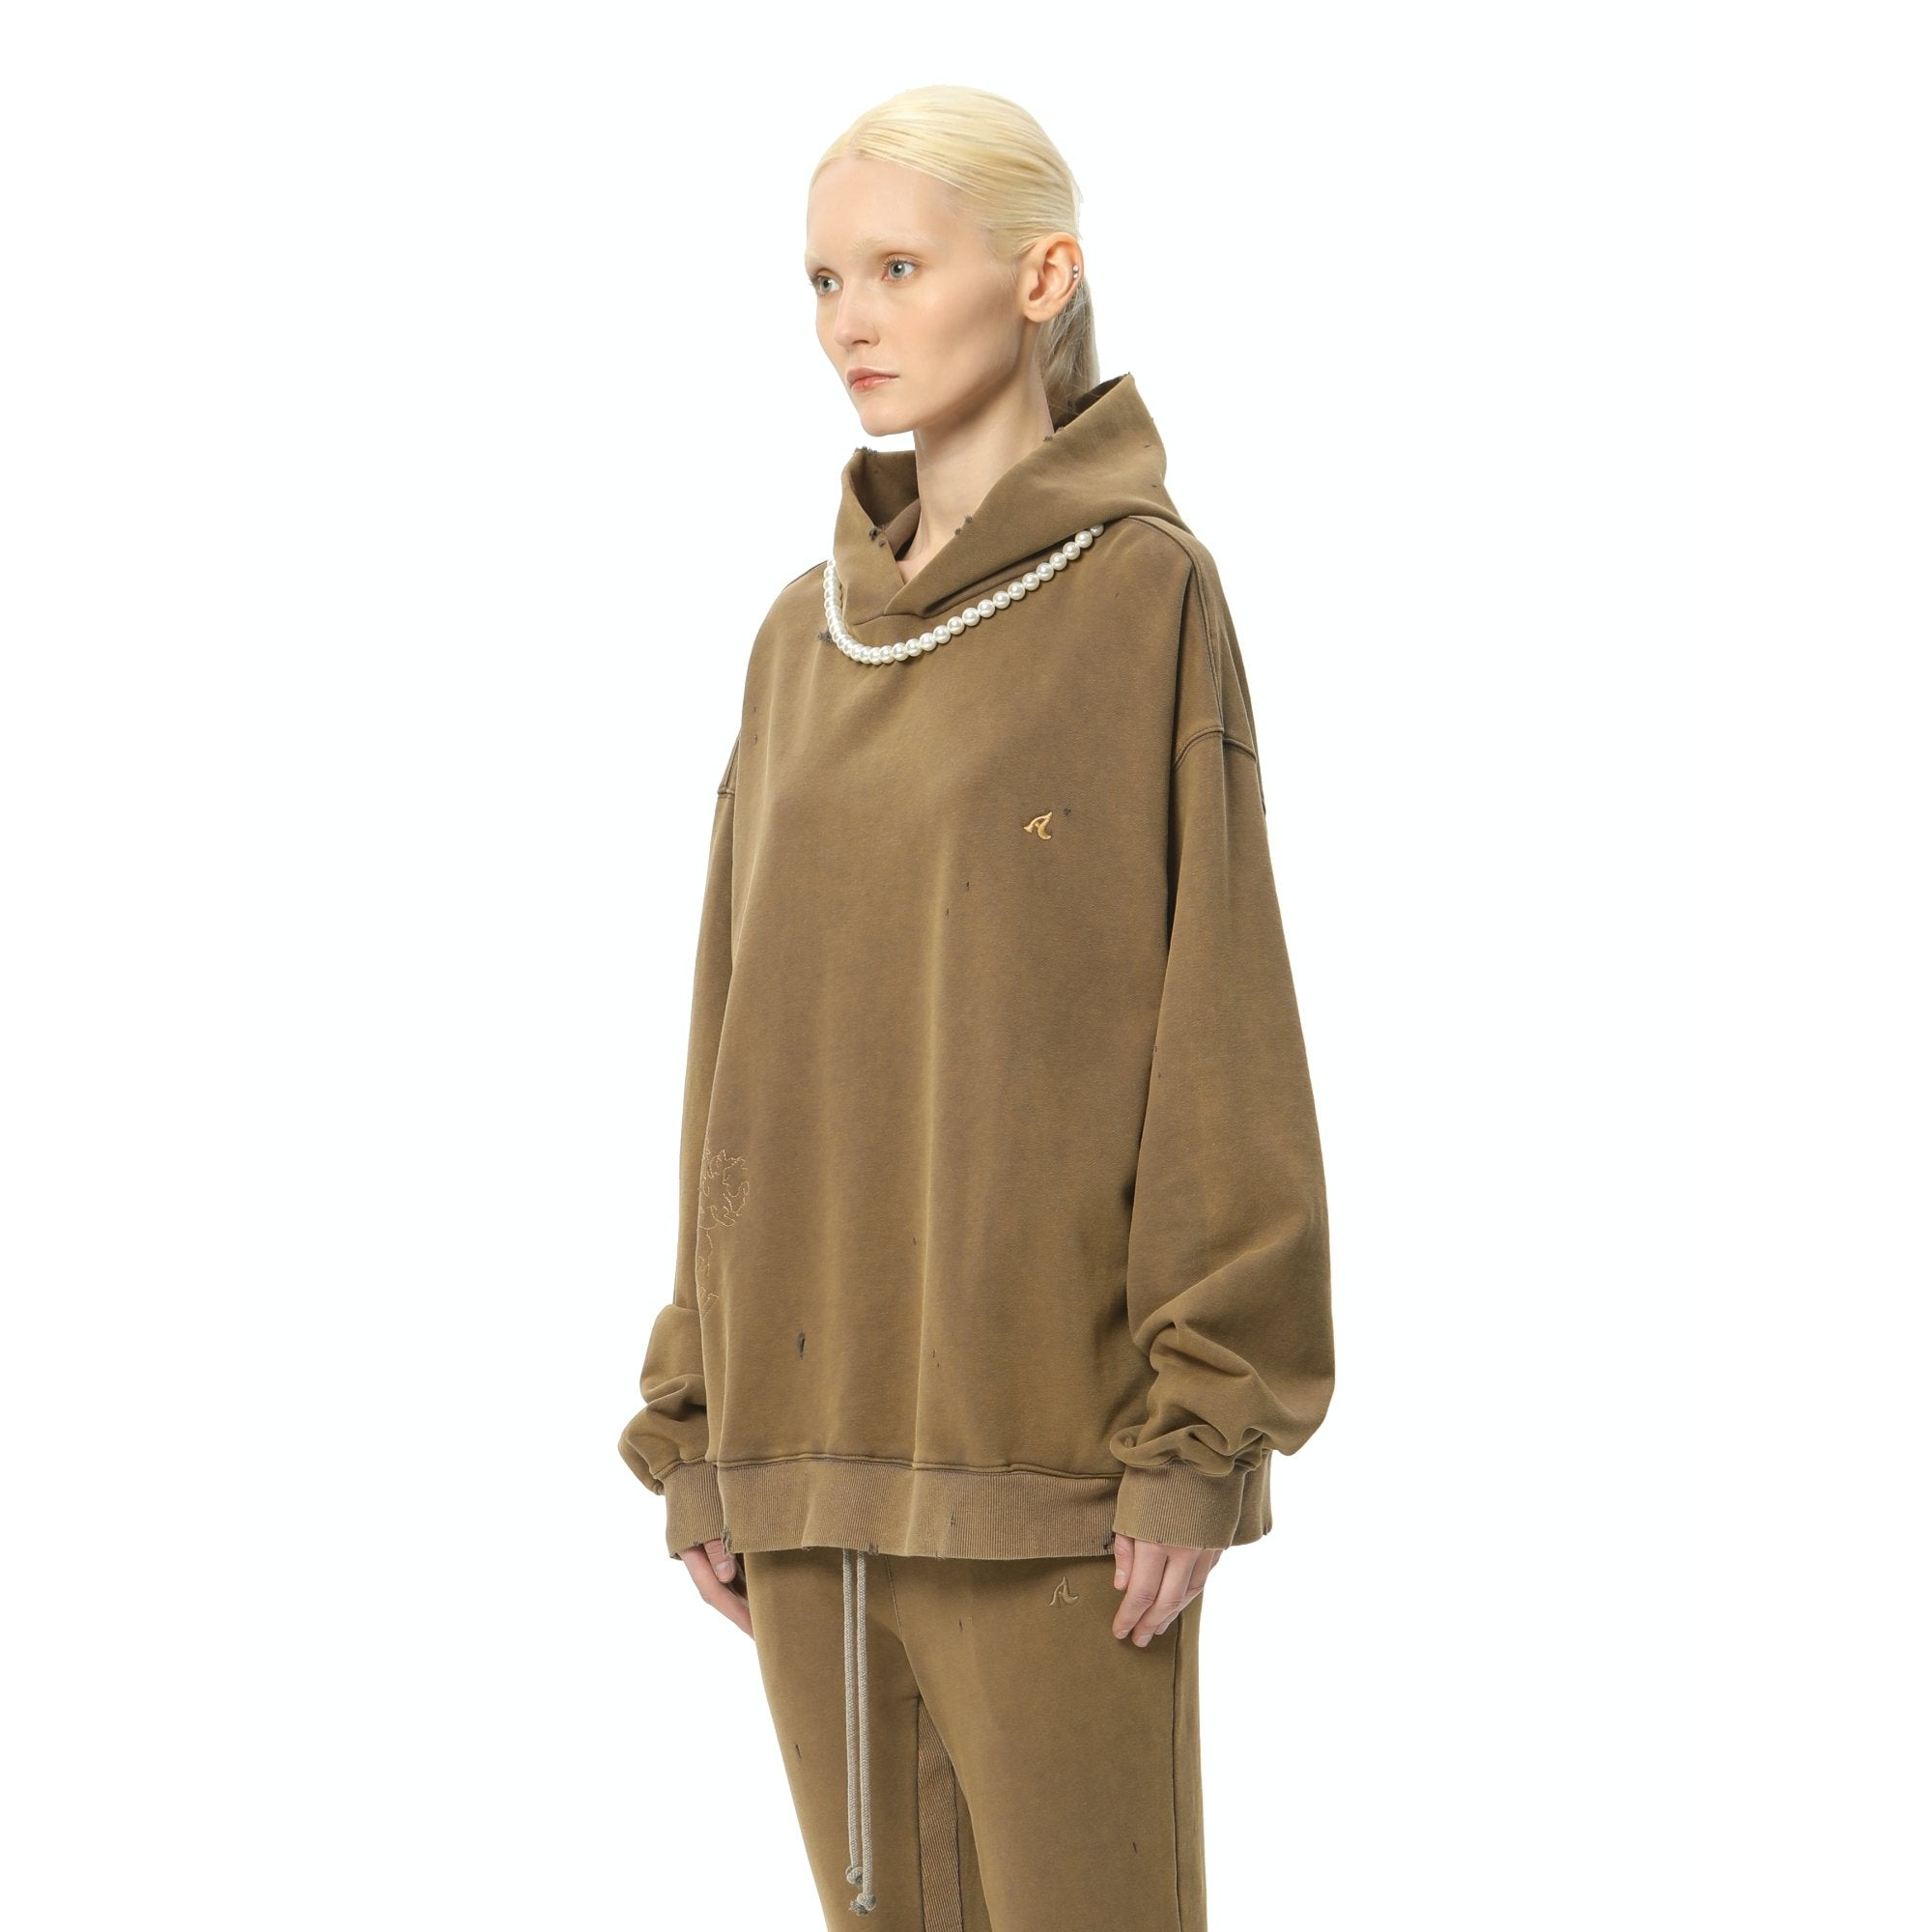 AIN'T SHY Pearl Necklace Hoodie Khaki Brown | MADA IN CHINA